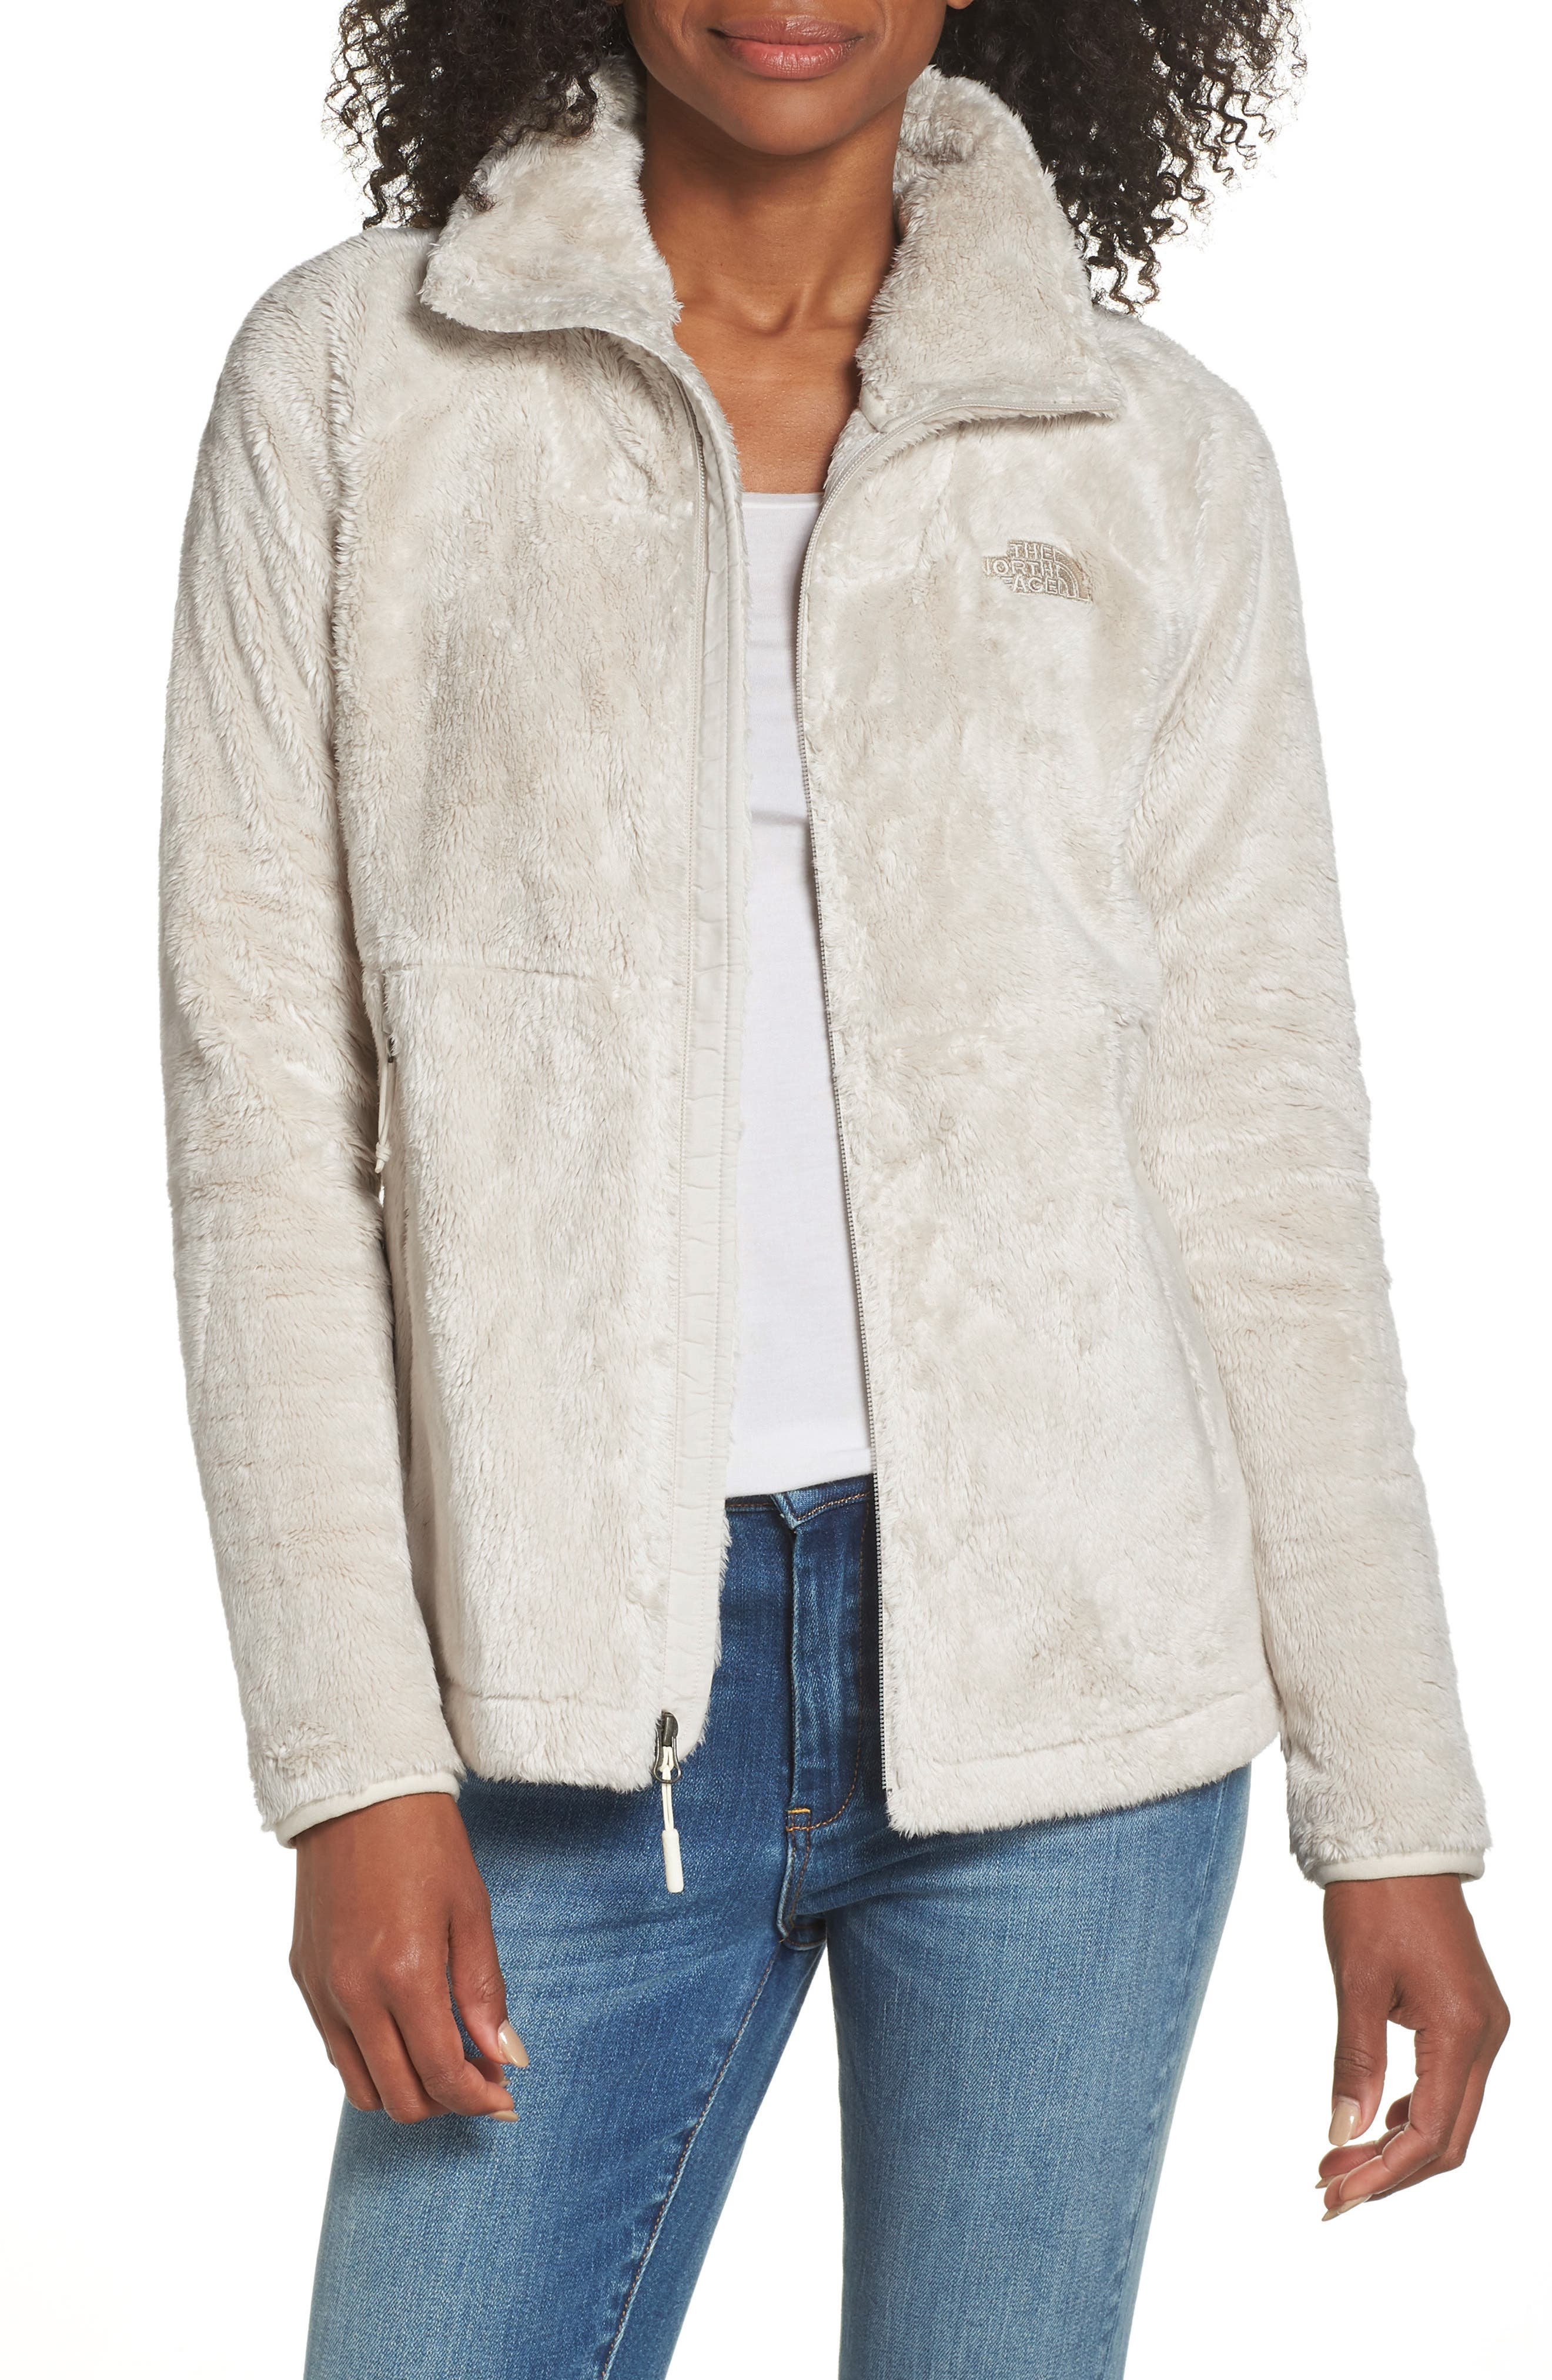 THE NORTH FACE, Osito Sport Hybrid Jacket, Main thumbnail 1, color, VINTAGE WHITE